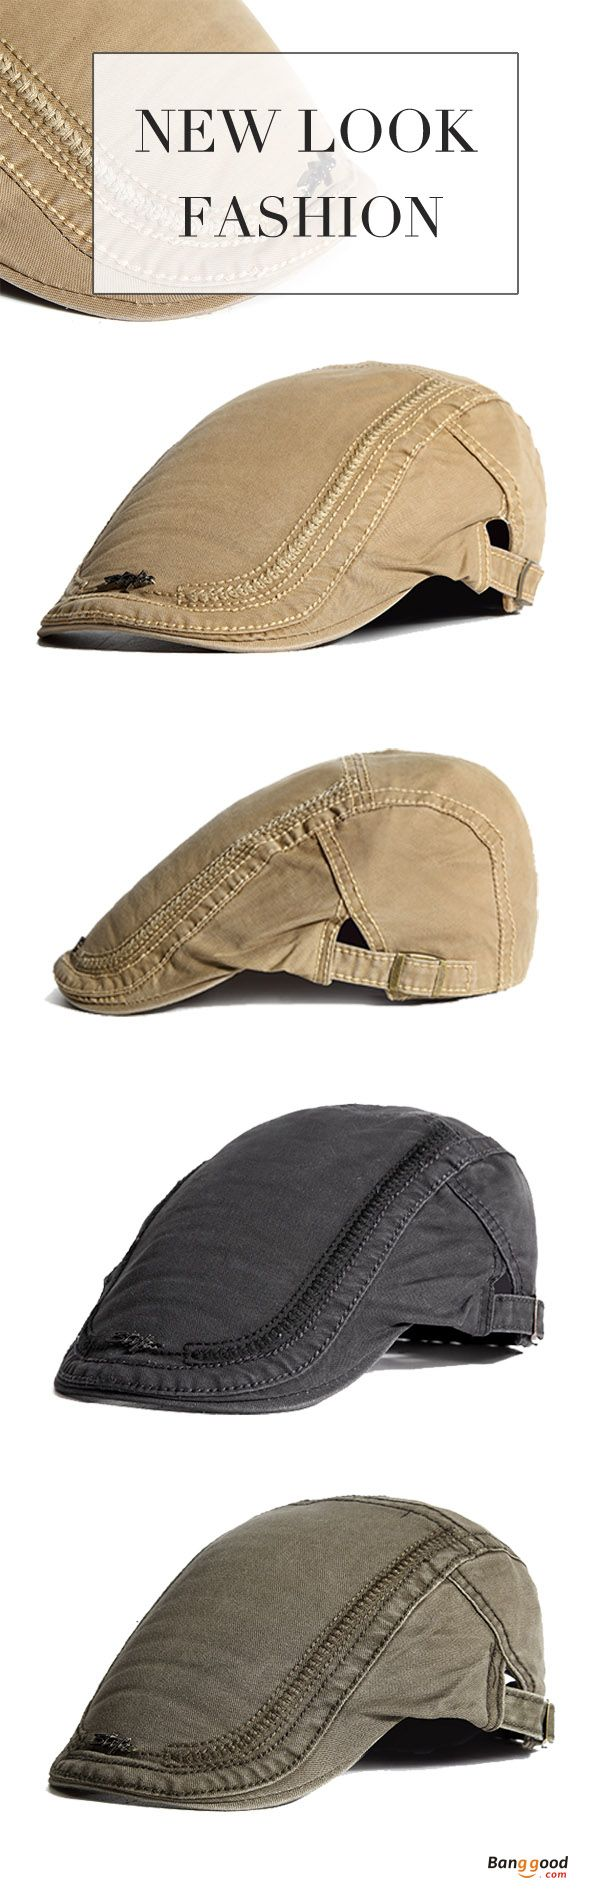 US$9.88 For Now+Free shipping. Men Cap, Breathable, Cotton Flat, Summer, Casual, Sunscreen Visor Cap. Color: Black, Khaki, Army Green, Dark Grey,Navy,Coffee. Shop now~